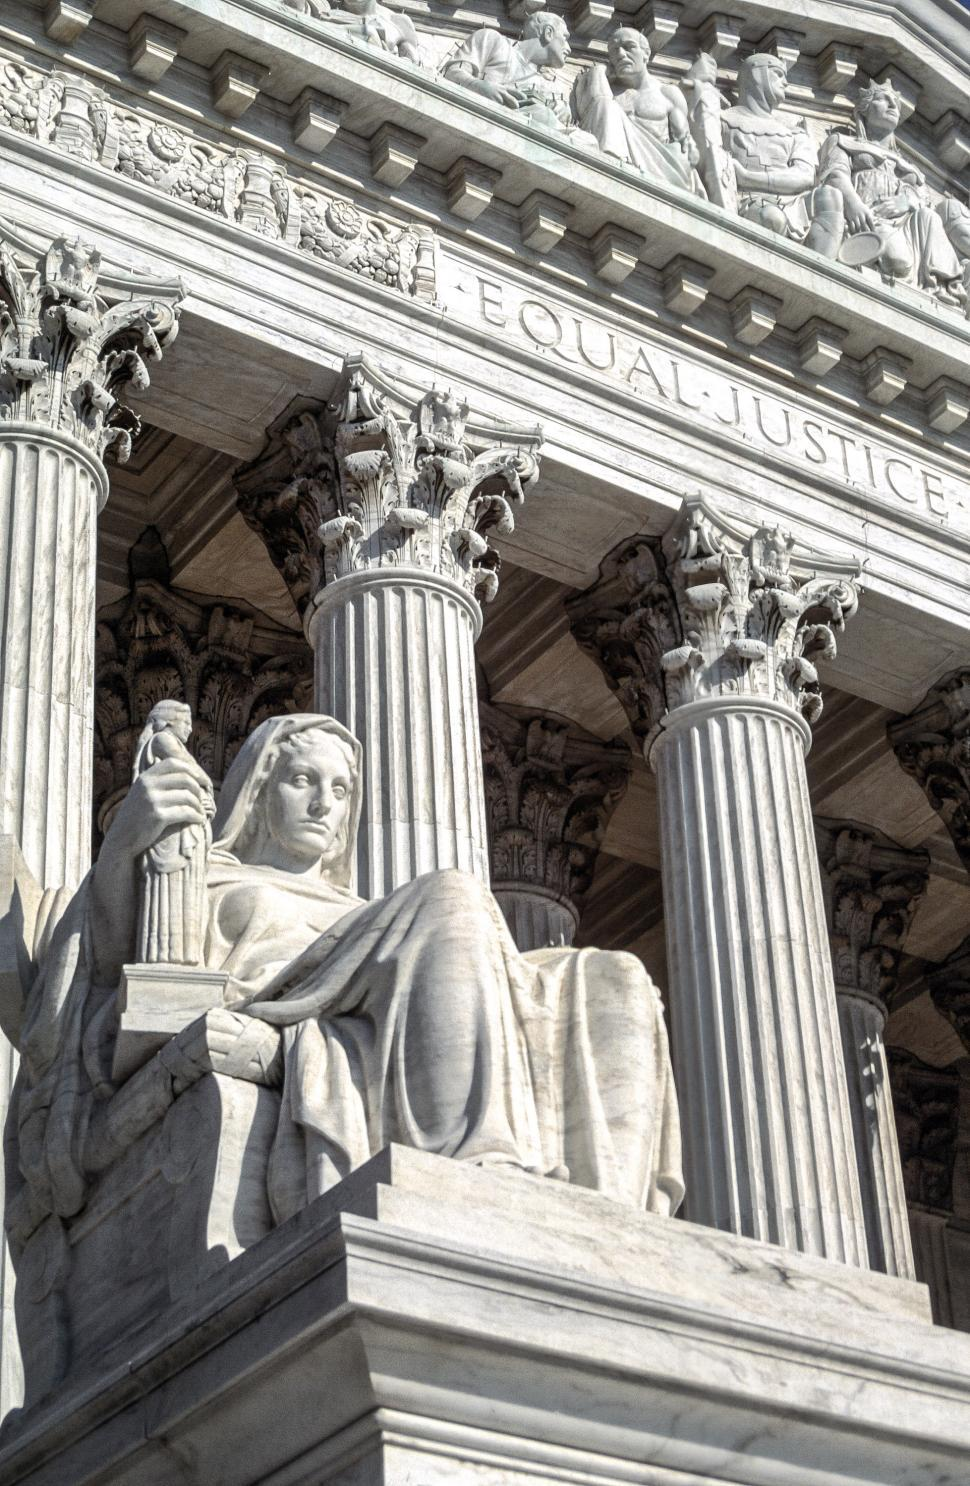 Download Free Stock HD Photo of The Contemplation of Justice statue Online